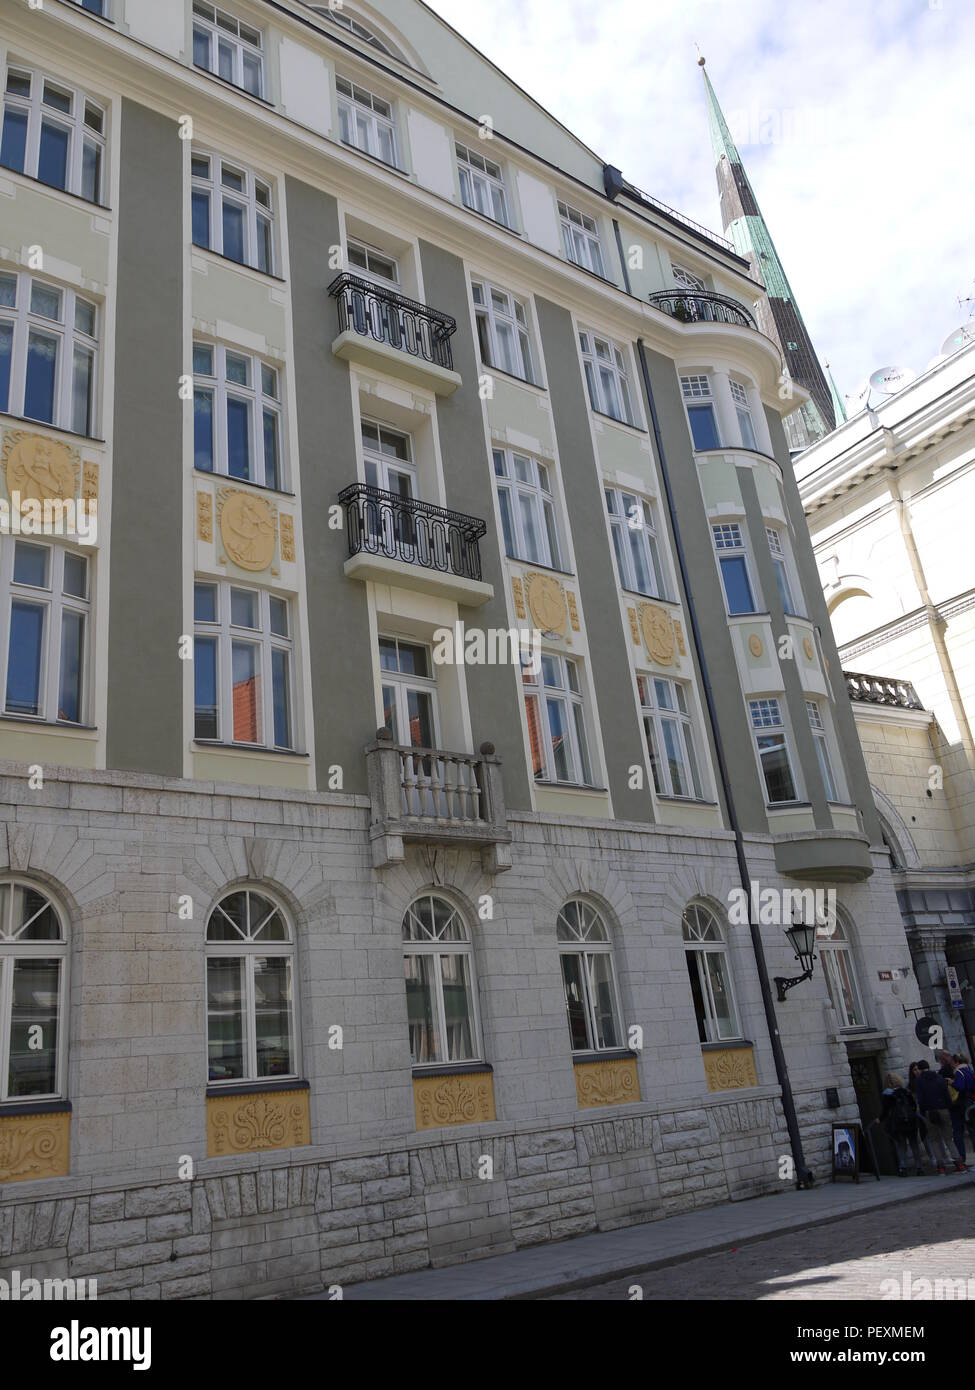 Former KGB building in Tallinn (Estonia) during soviet occupation is now a museum - Stock Image